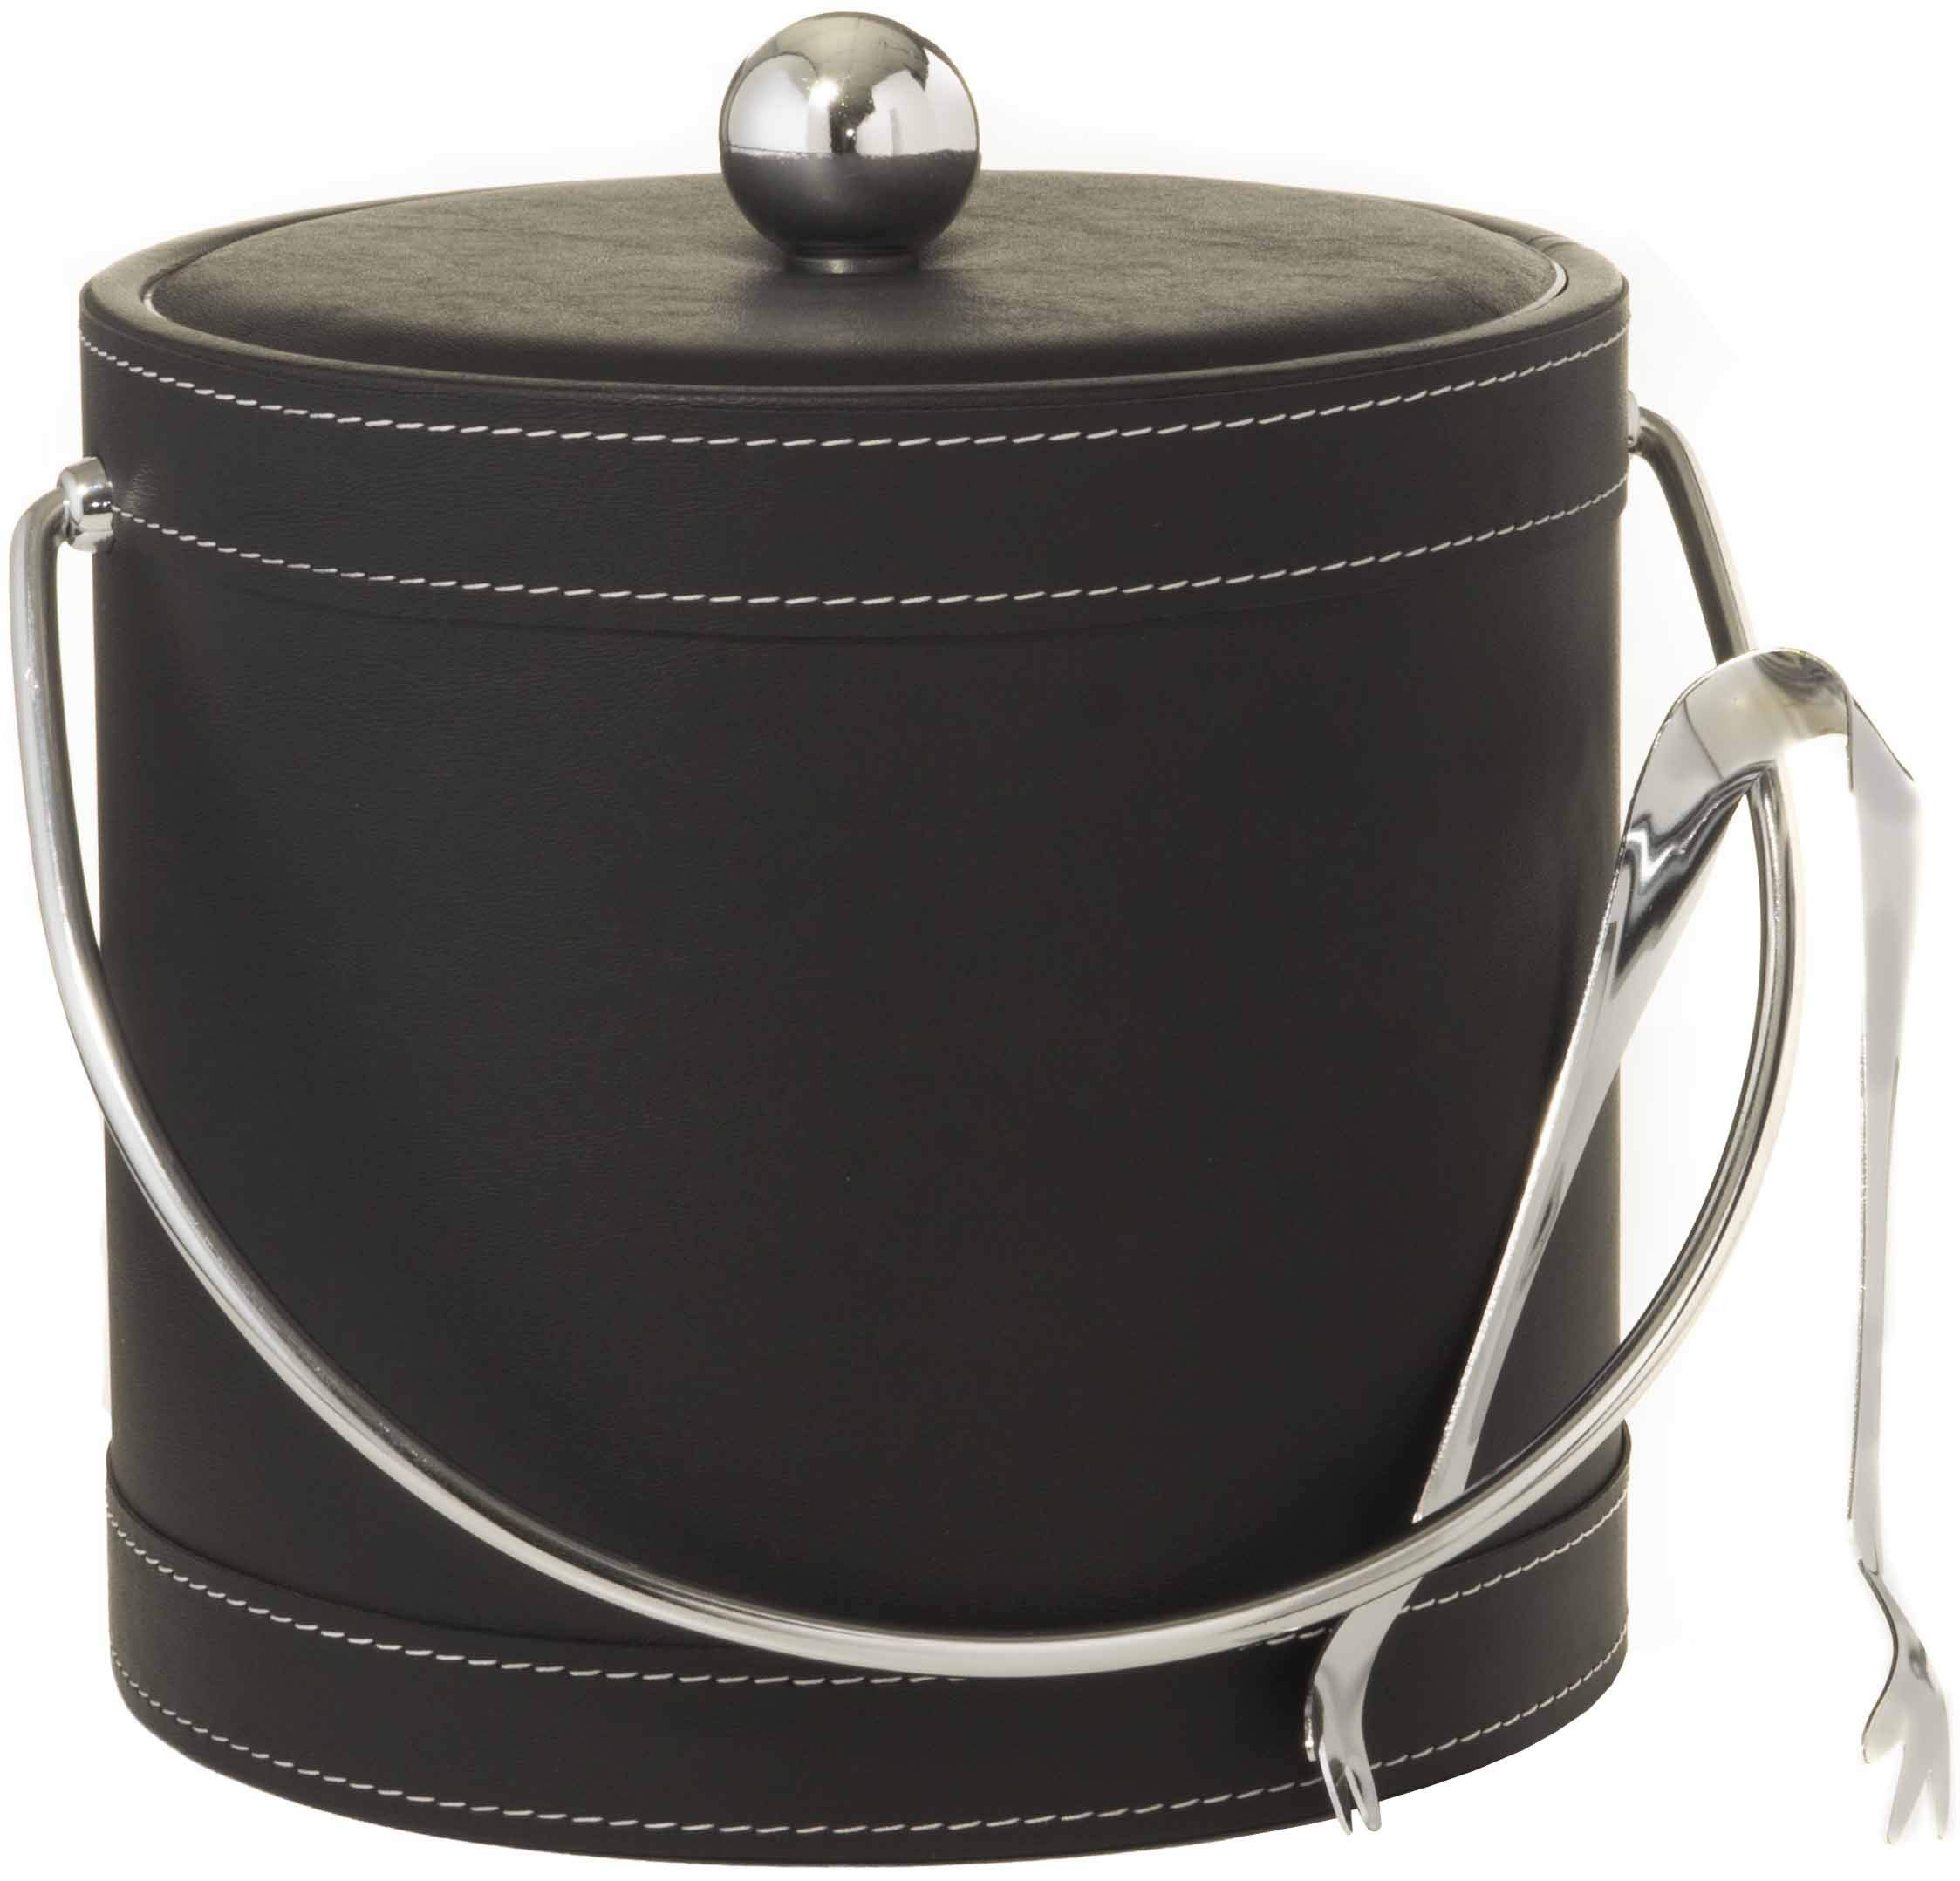 Hand Made In USA Black Leatherette With White Stitching Double Walled 3-Quart Insulated Ice Bucket With Bonus Ice Tongs by Mr. Ice Bucket By Stephanie Imports